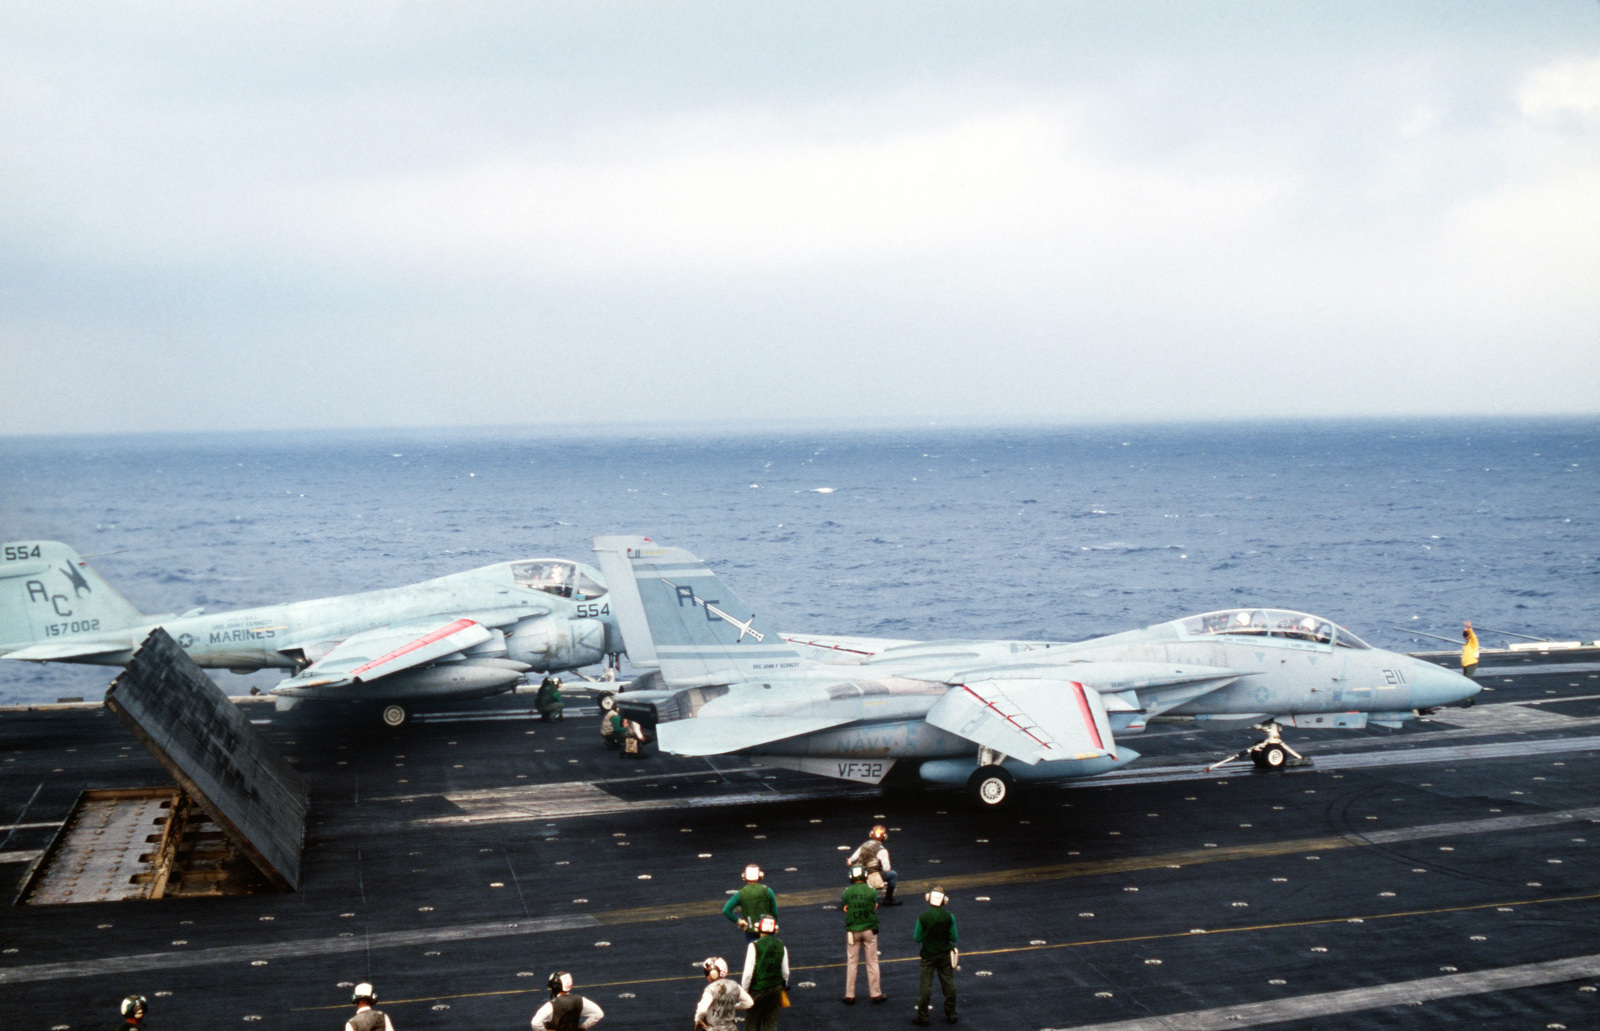 Flight deck crewmen signal launch instructions to the pilot of a Fighter Squadron 32 (VF-32) F-14A Tomcat aircraft aboard the aircraft carrier USS JOHN F. KENNEDY (CV 67) during NATO Exercise DISPLAY DETERMINATION '86. An A-6E Intruder aircraft is on the catapult in the background